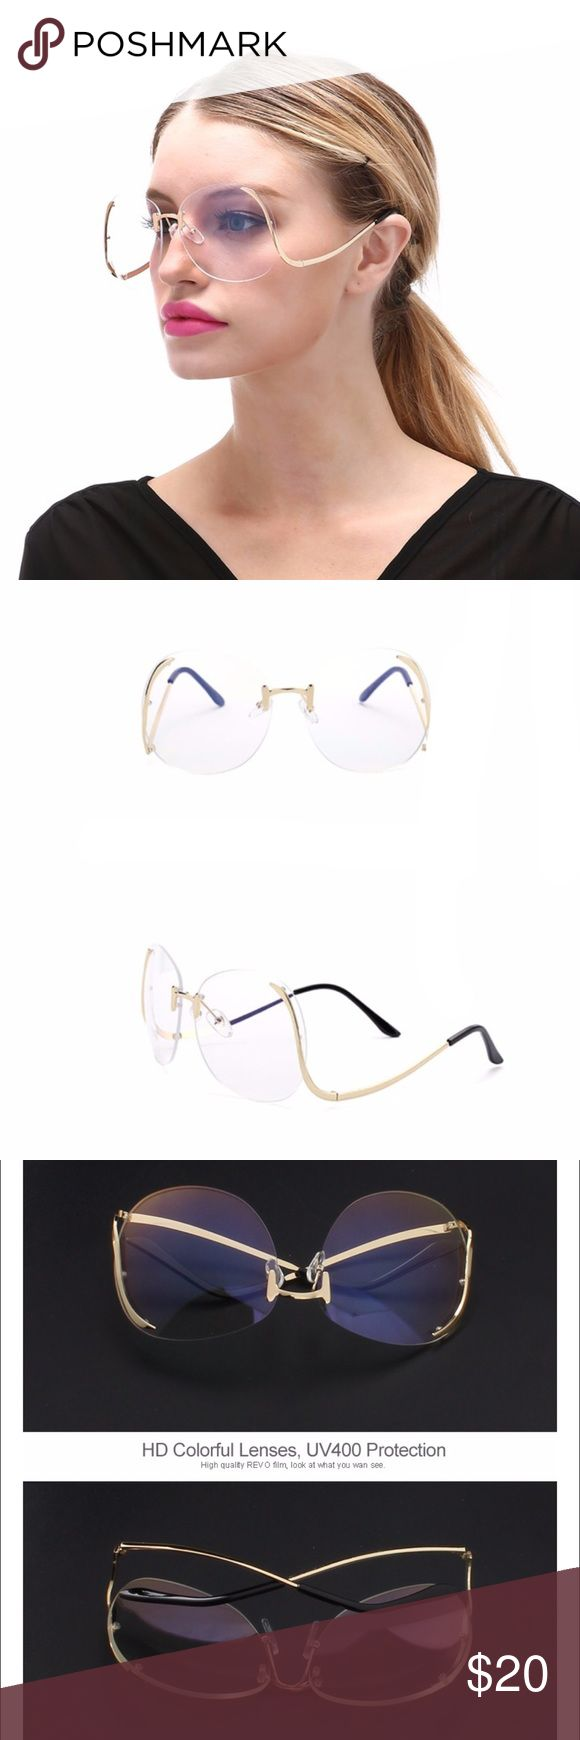 New Vintage Oversized Rimless Retro Sunglasses New • Party, travel, shopping sunglasses 😎UV400. Lens height 62mm. Lens width59mm. Frame material alloy. Accessories Sunglasses